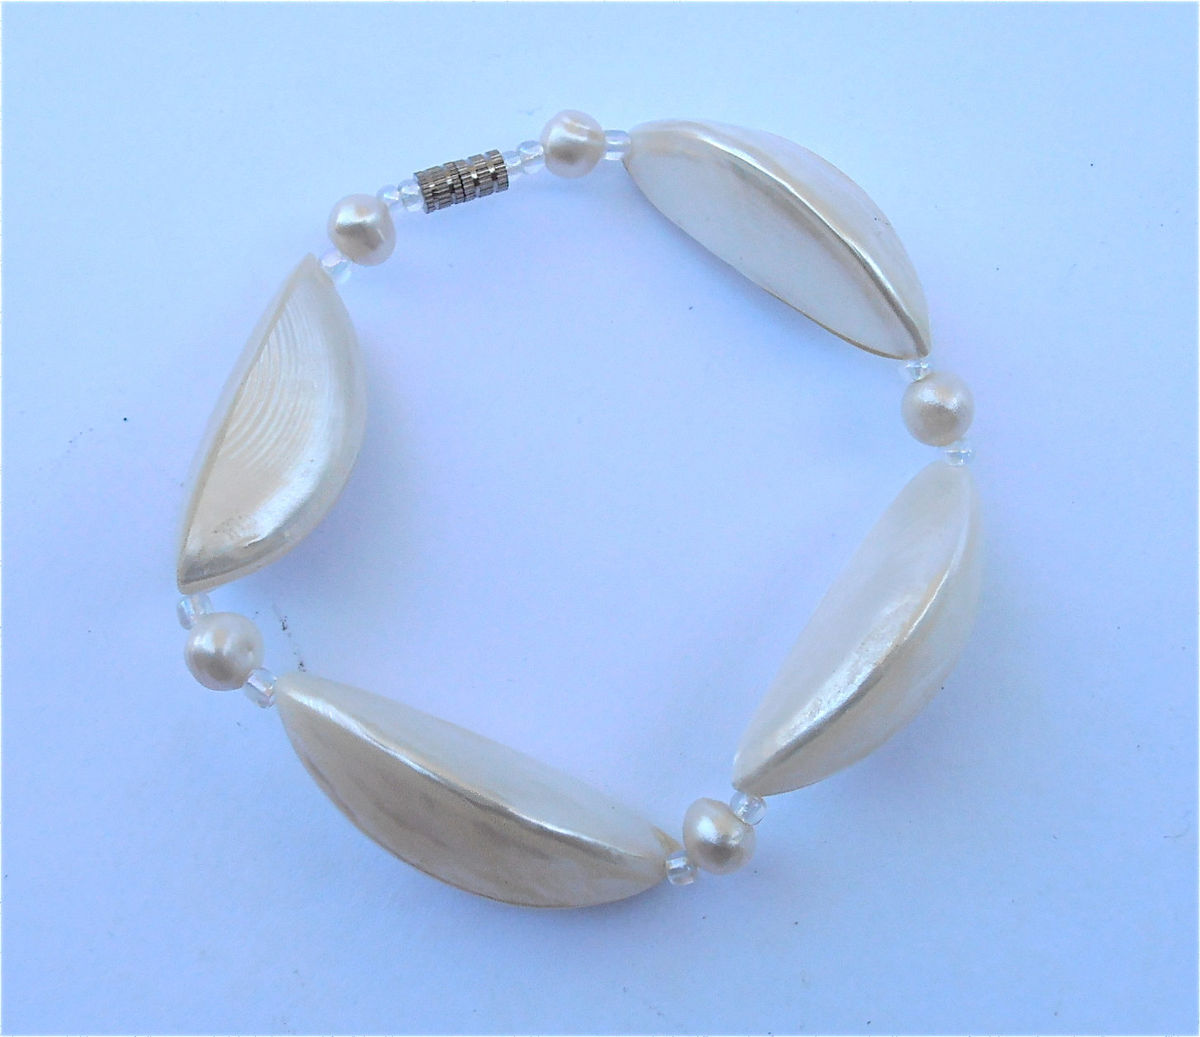 Vintage Mother of Pearl Bracelet Vintage White Pearl Bracelet White Shell Bracelet White Seashell Bracelet Geometric Bracelet MOP Bracelet - product images  of